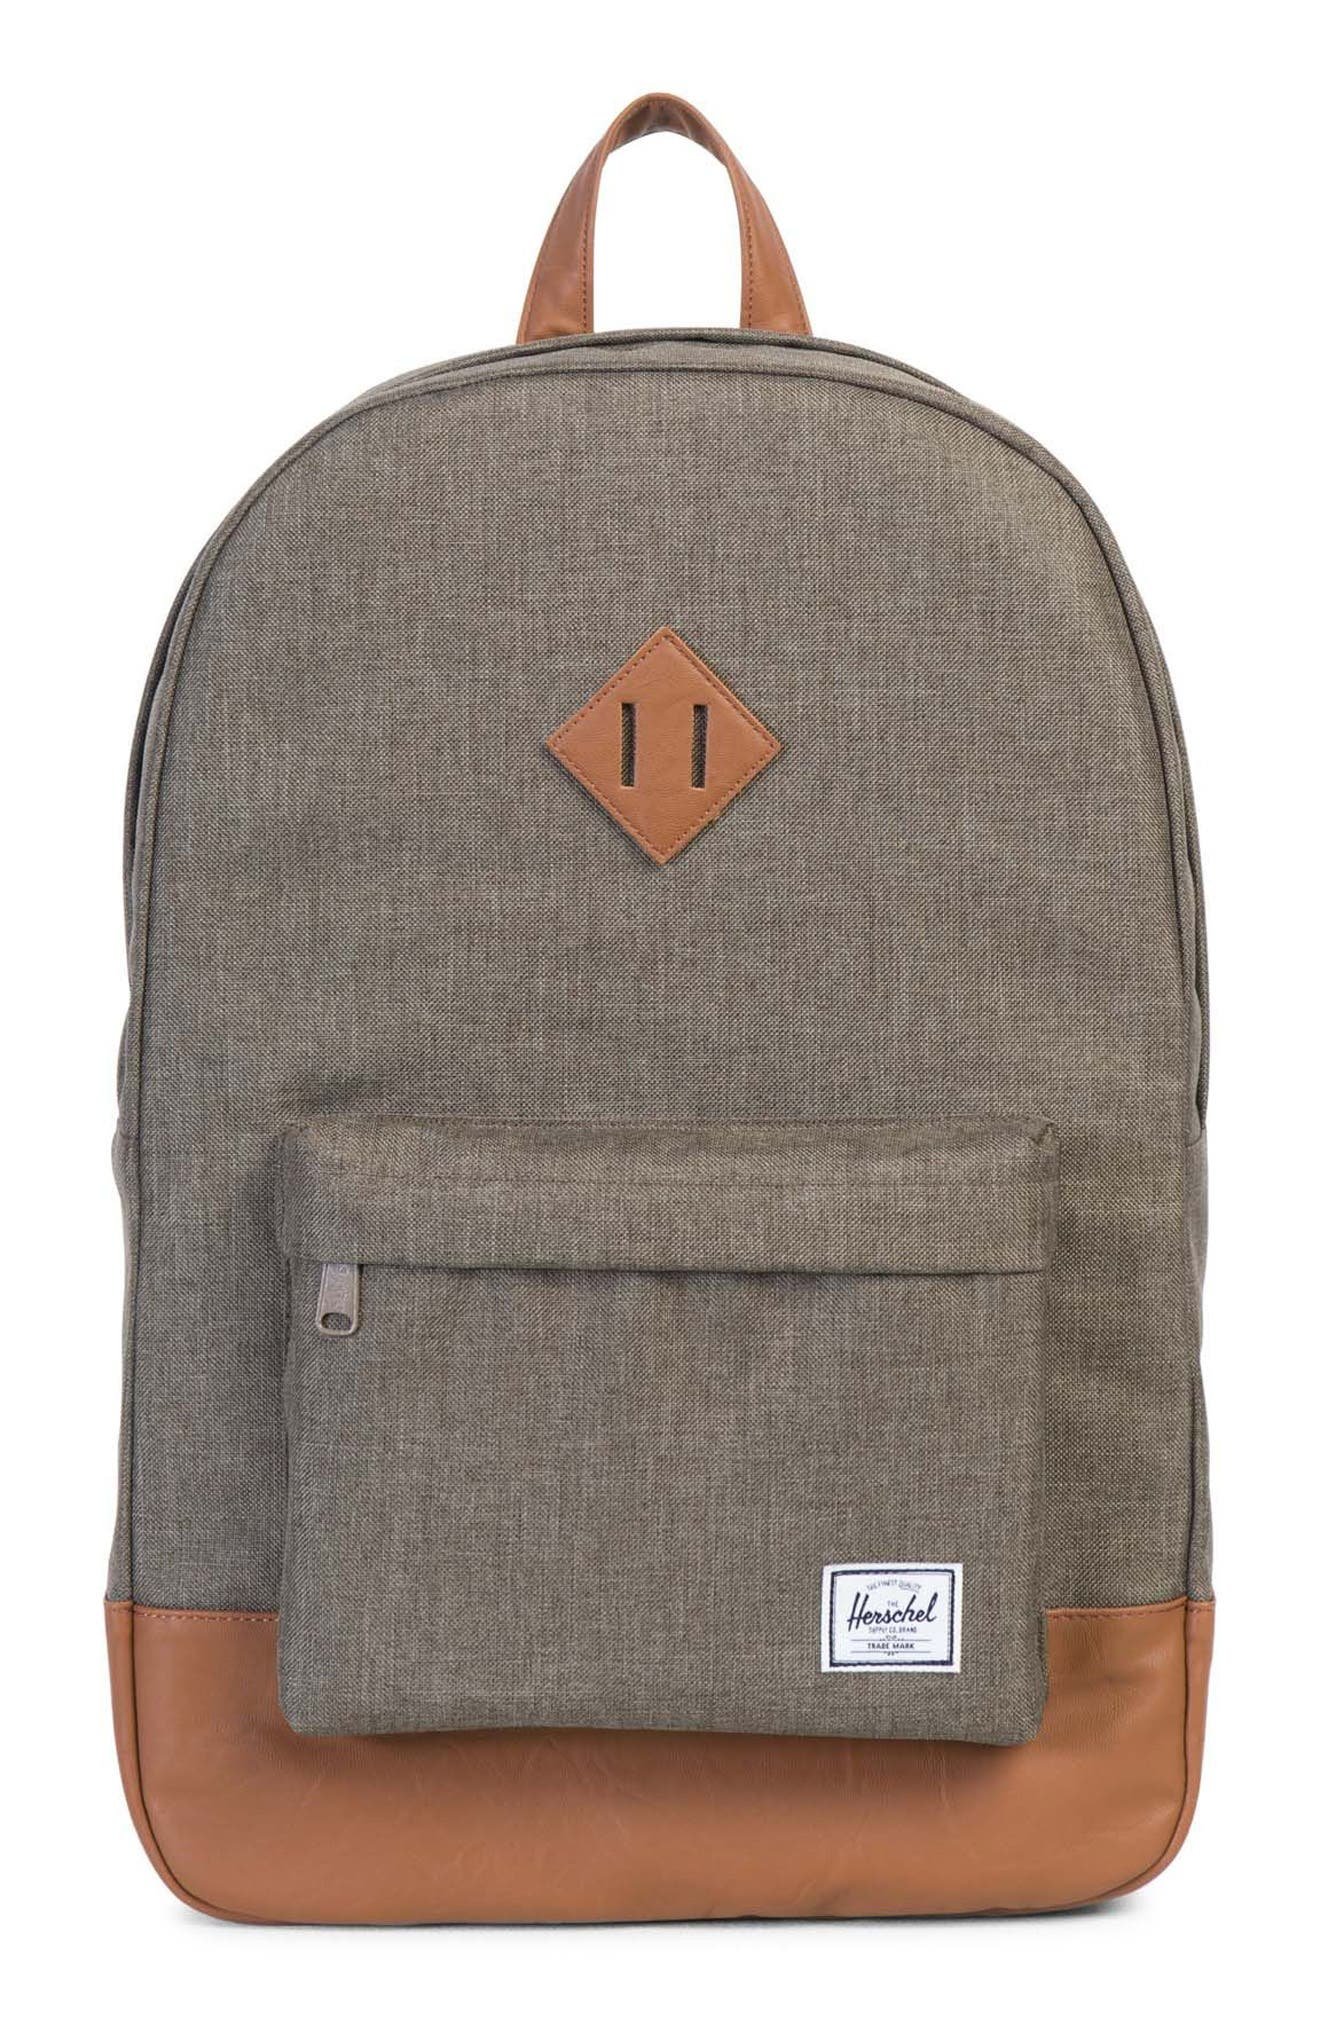 Heritage Backpack,                         Main,                         color, Canteen Crosshatch/ Tan